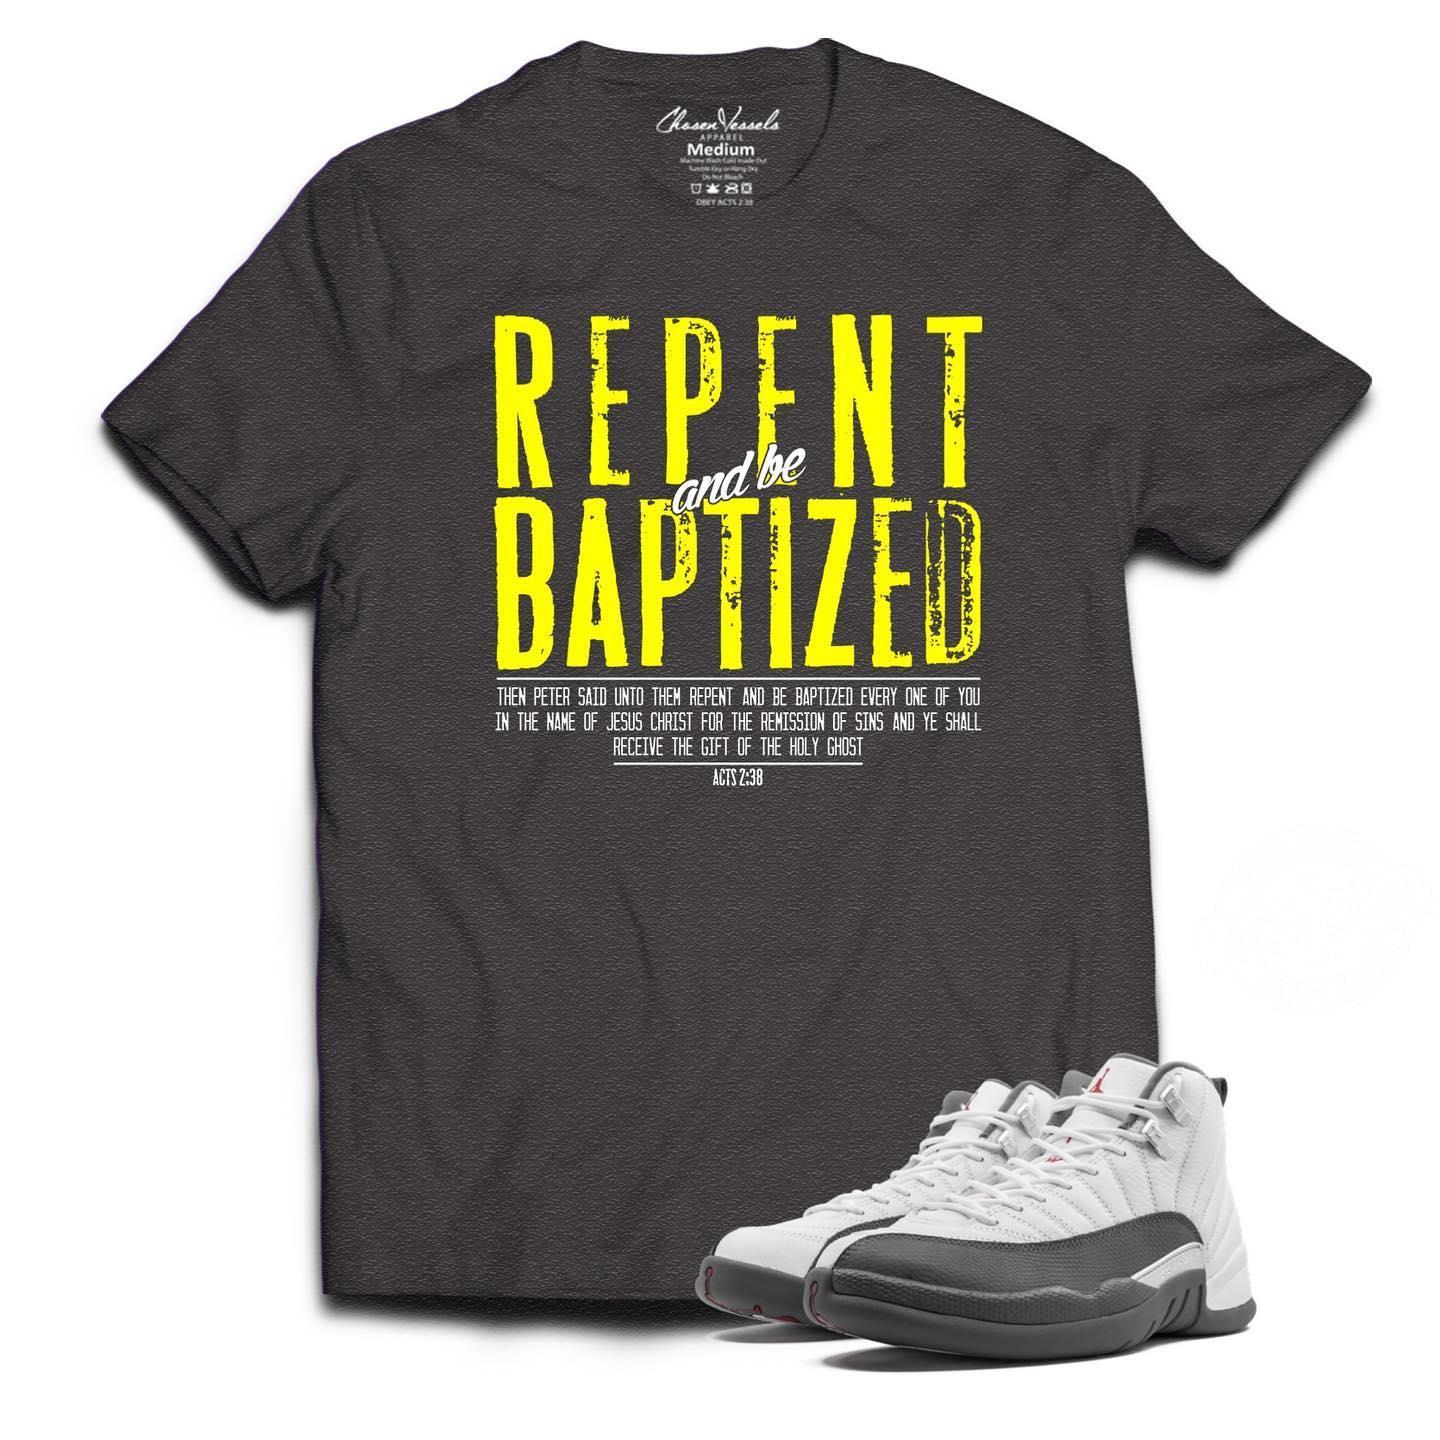 Repent and be baptized shirt